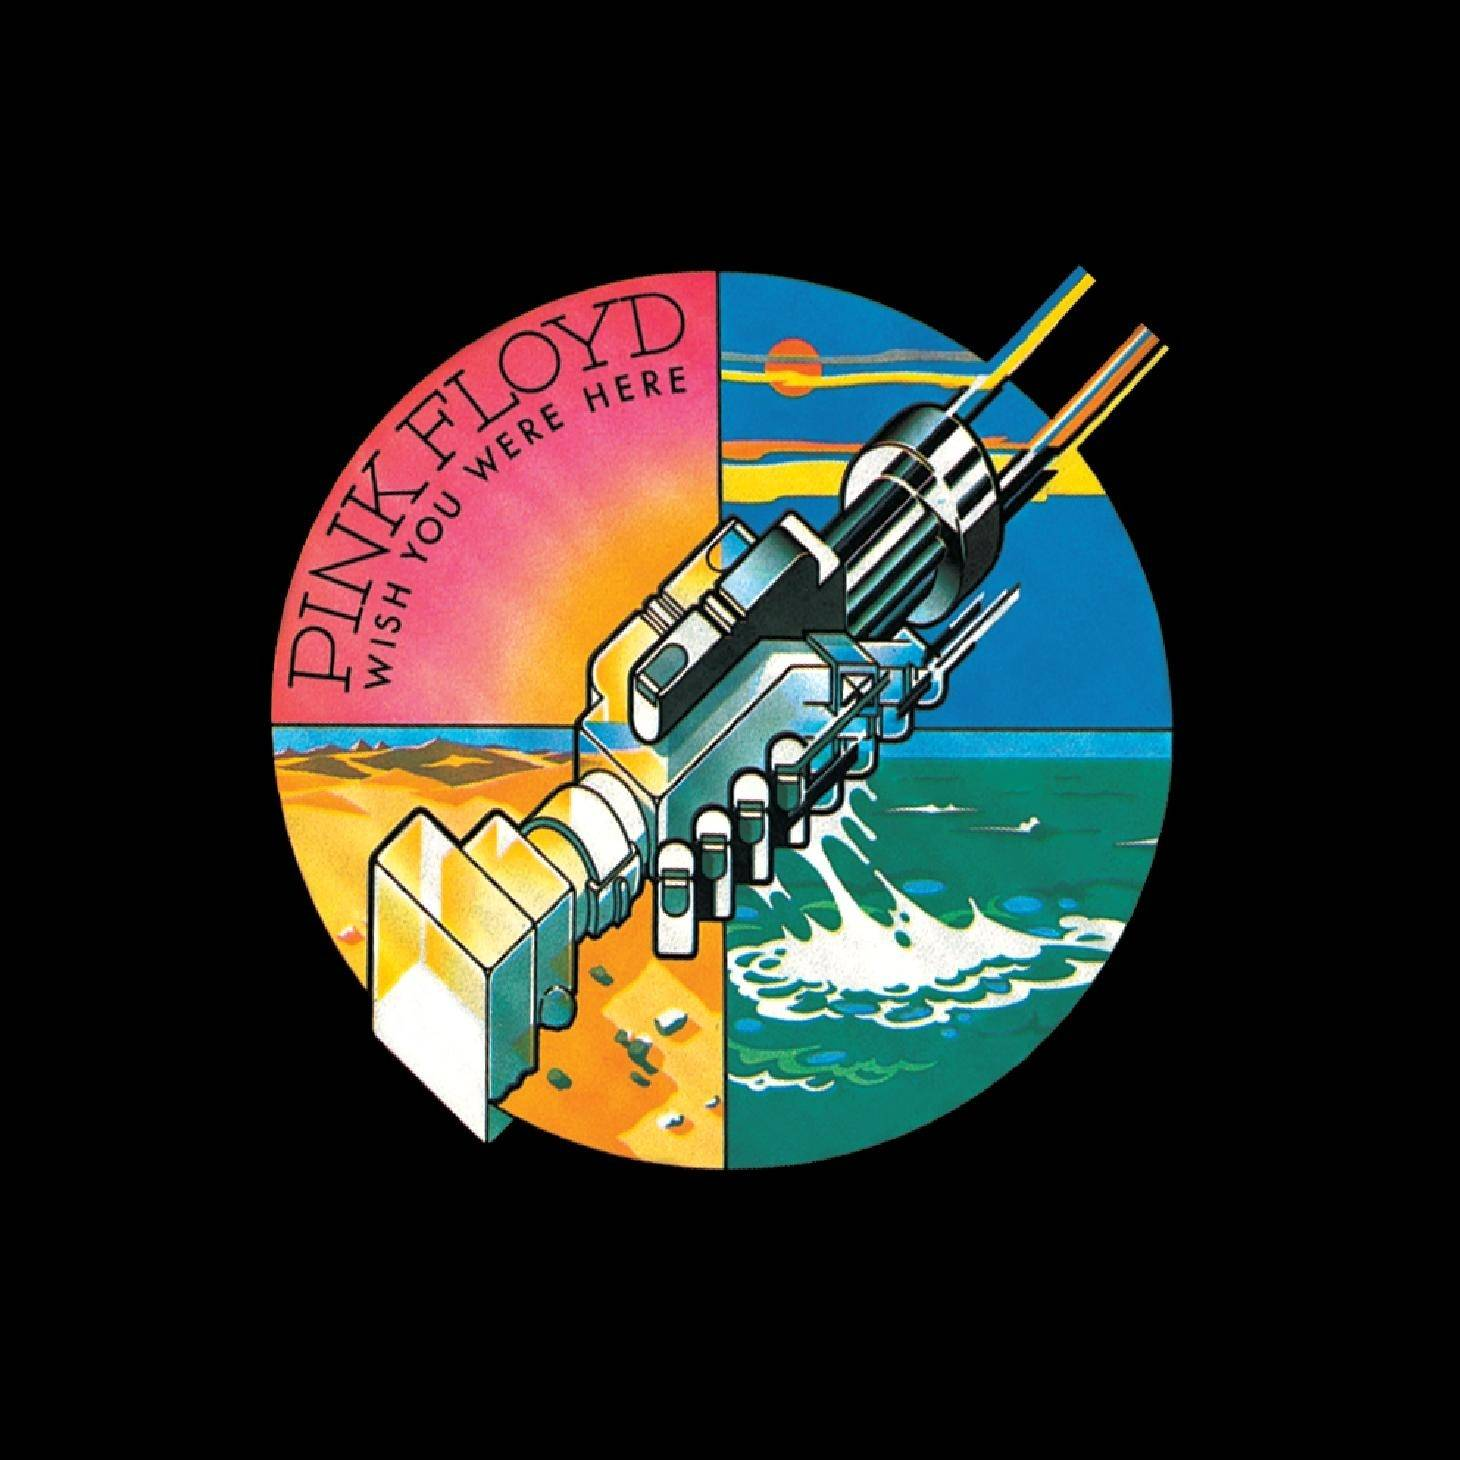 PFRLP 9 Out Of Stock Home Store Rock PINK FLOYD WISH YOU WERE HERE